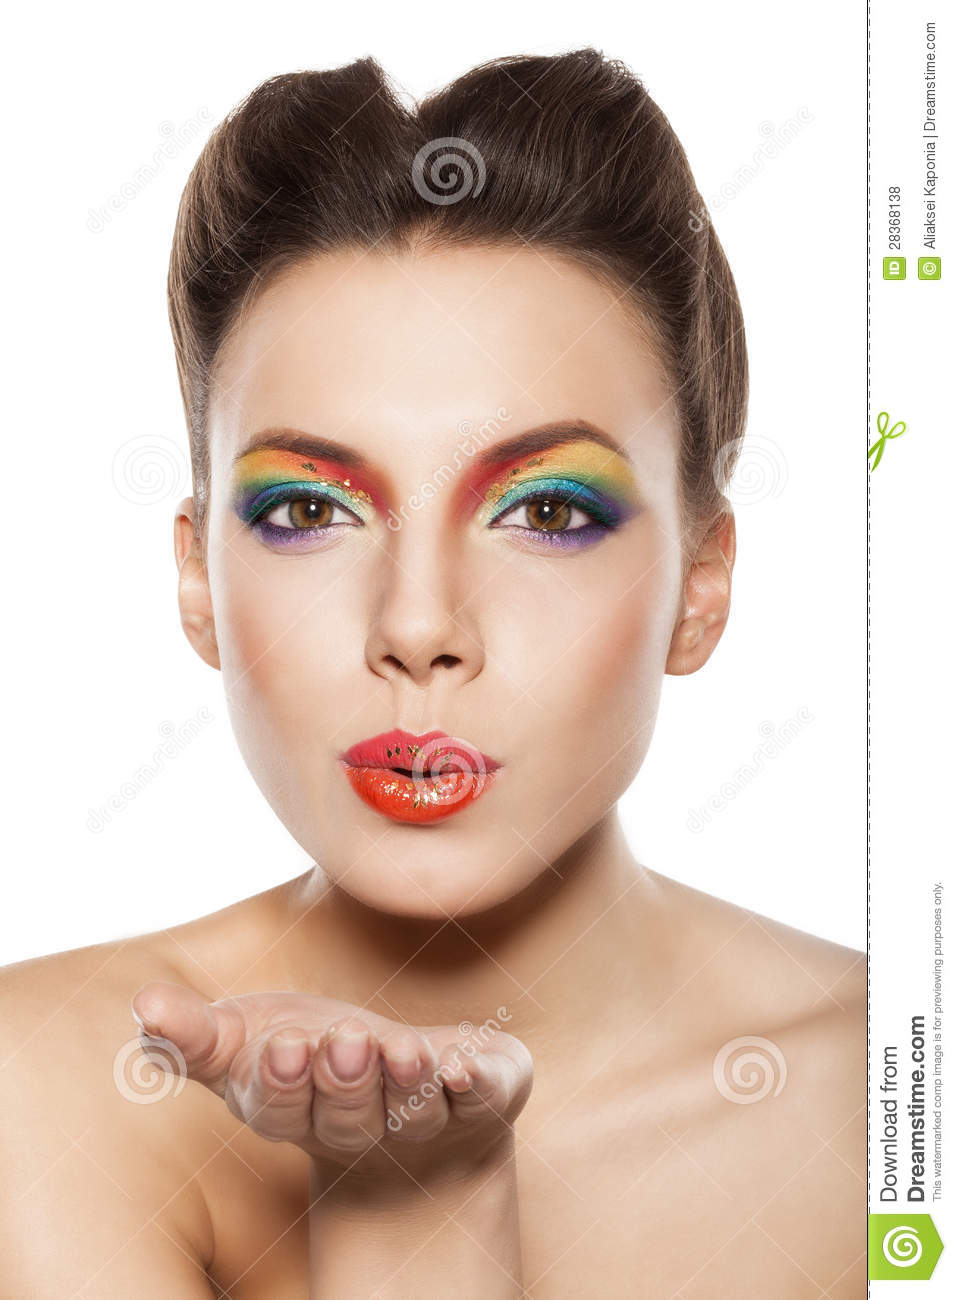 Woman Blowing A Kiss Stock Photo Image Of Lady Clean